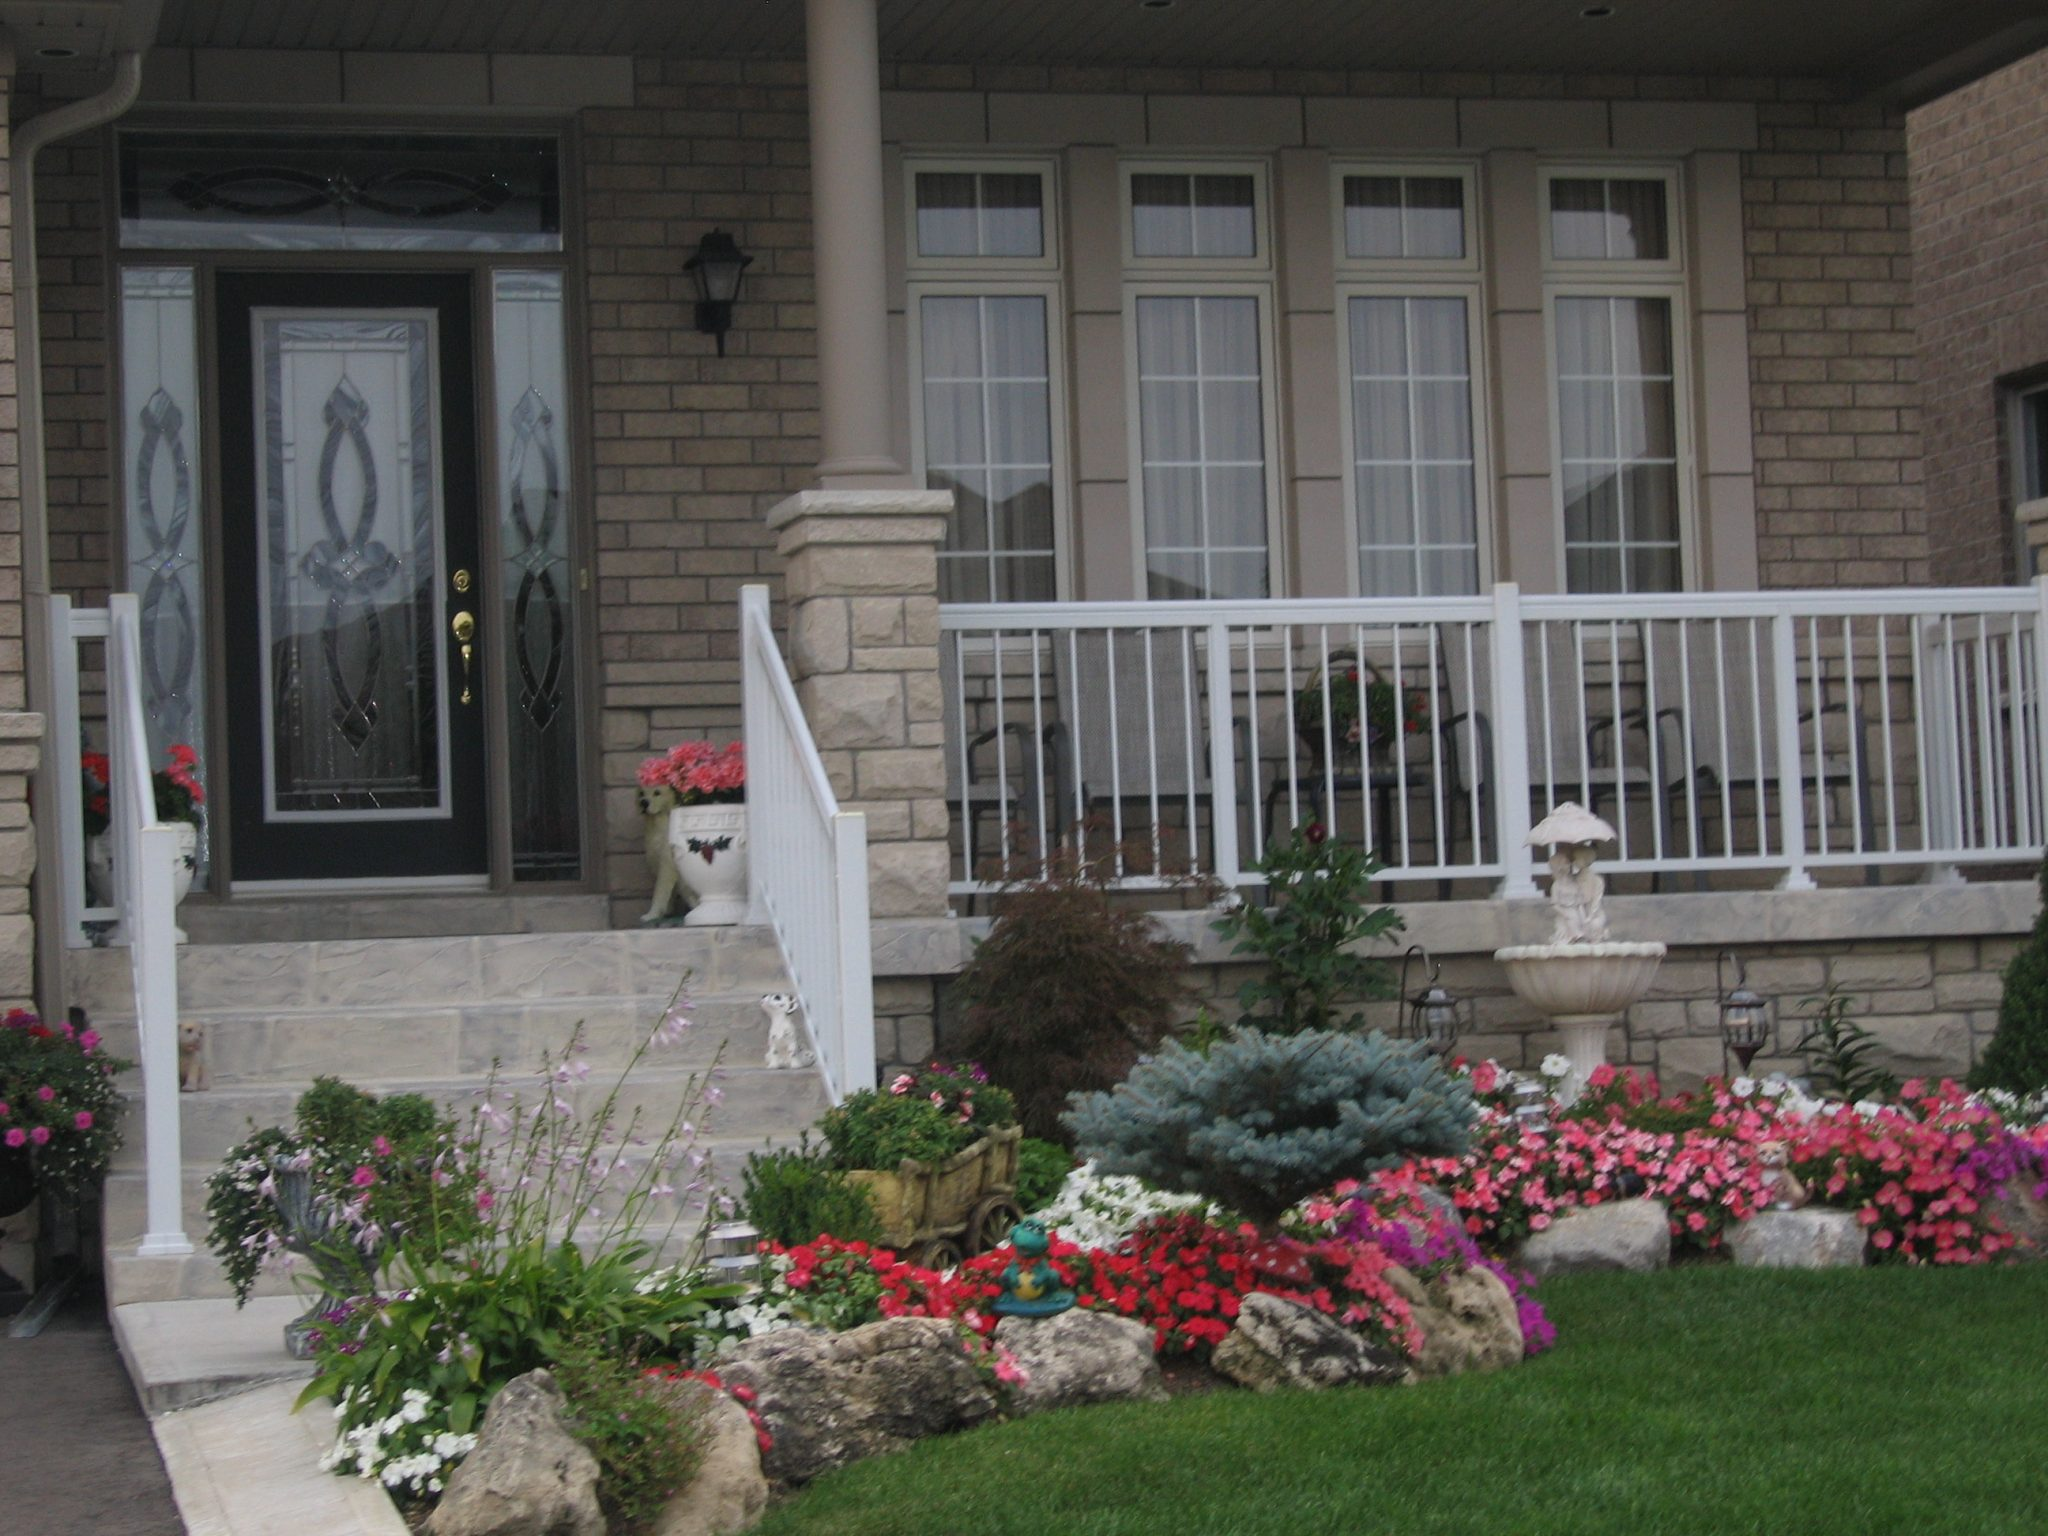 Wide porch with aluminum railings